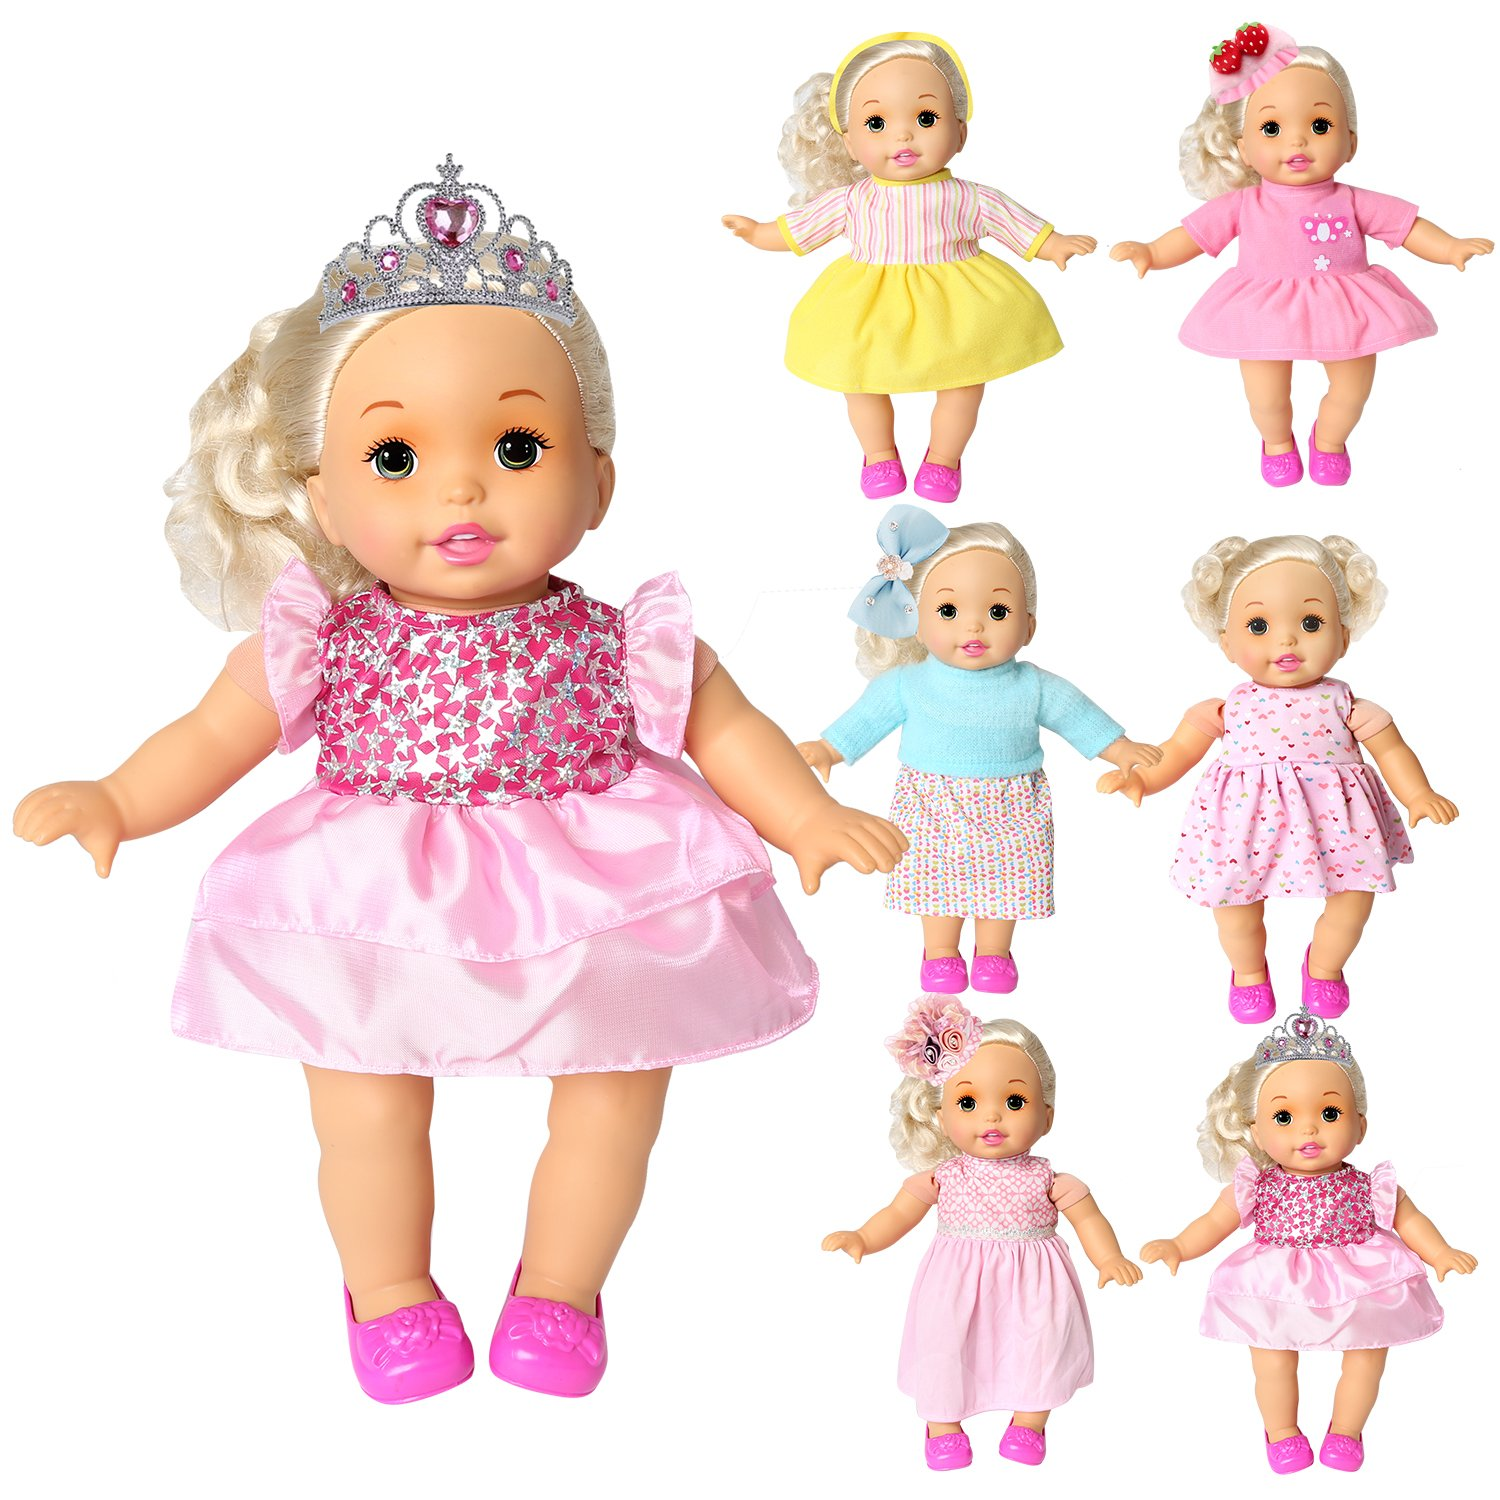 rainbow yuango Pack of 6 Bitty Baby Alive Doll Clothes Colorful Handmade Dresses Skirts Outfits Realistic Daily Costumes Gown Set Fits 12'' 13'' 14'' 15'' Baby Alive Doll Chenghai